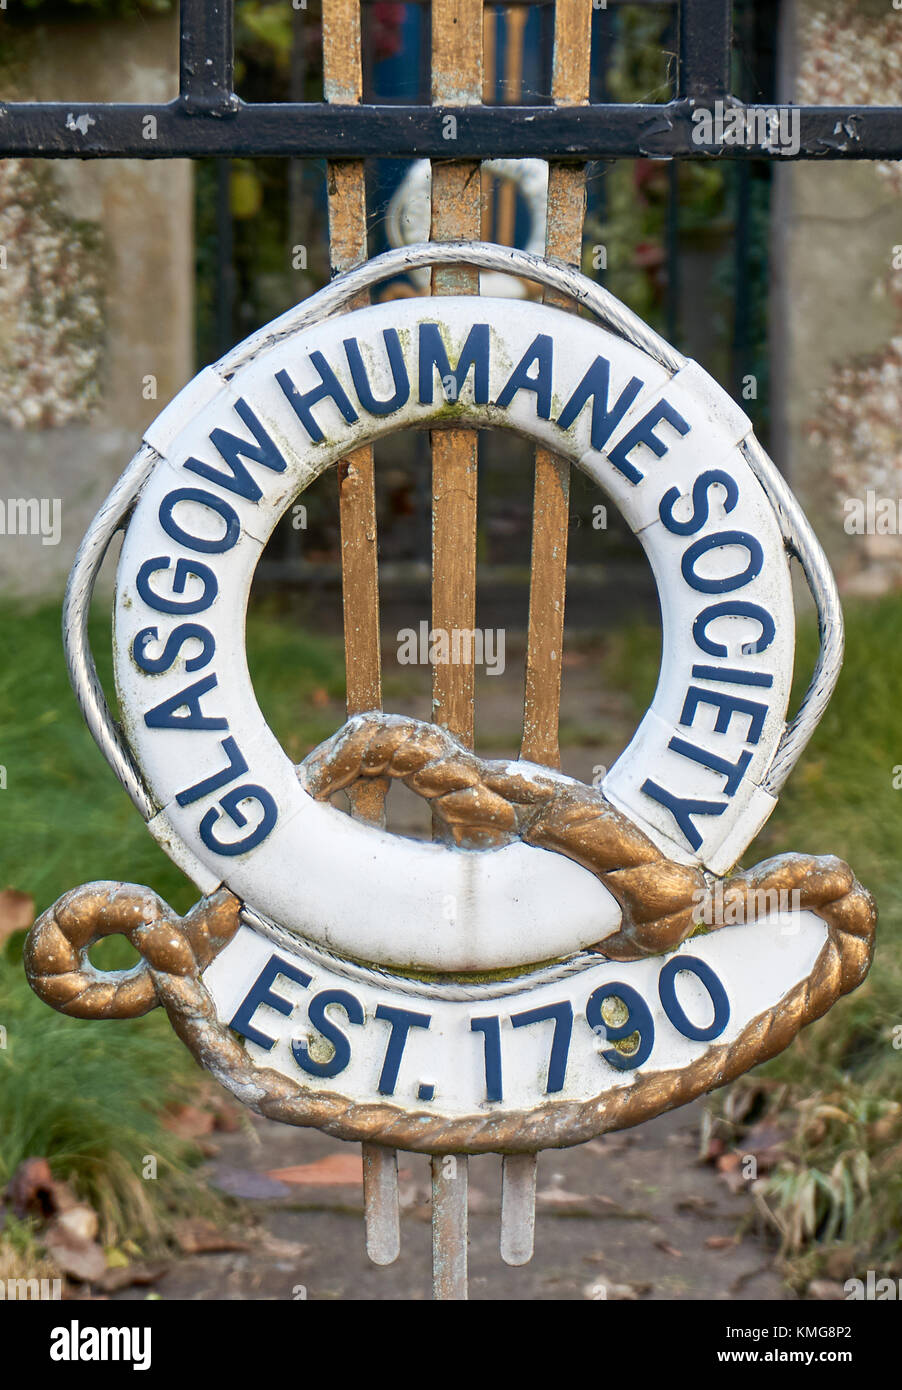 Glasgow, Scotland - 1 December 2017 : A Glasgow Humane Society sign at the entrance gate. - Stock Image